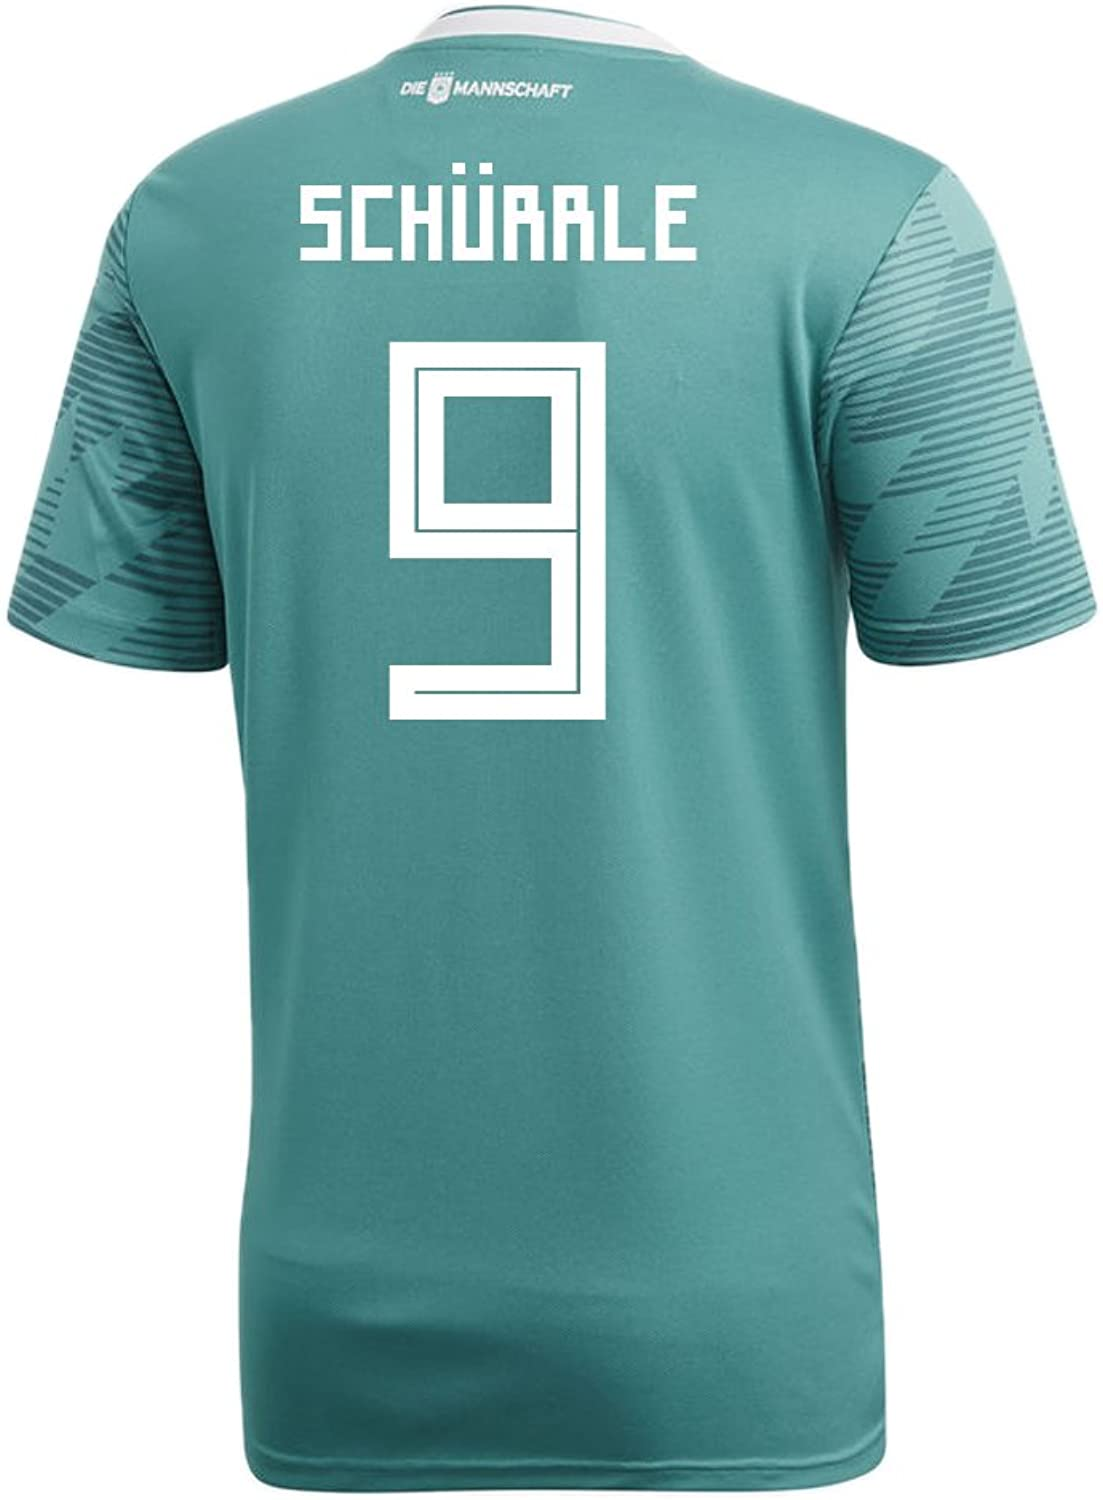 Adidas SCHURRLE   9 Germany Away Soccer Stadium Jersey World Cup Russia 2018